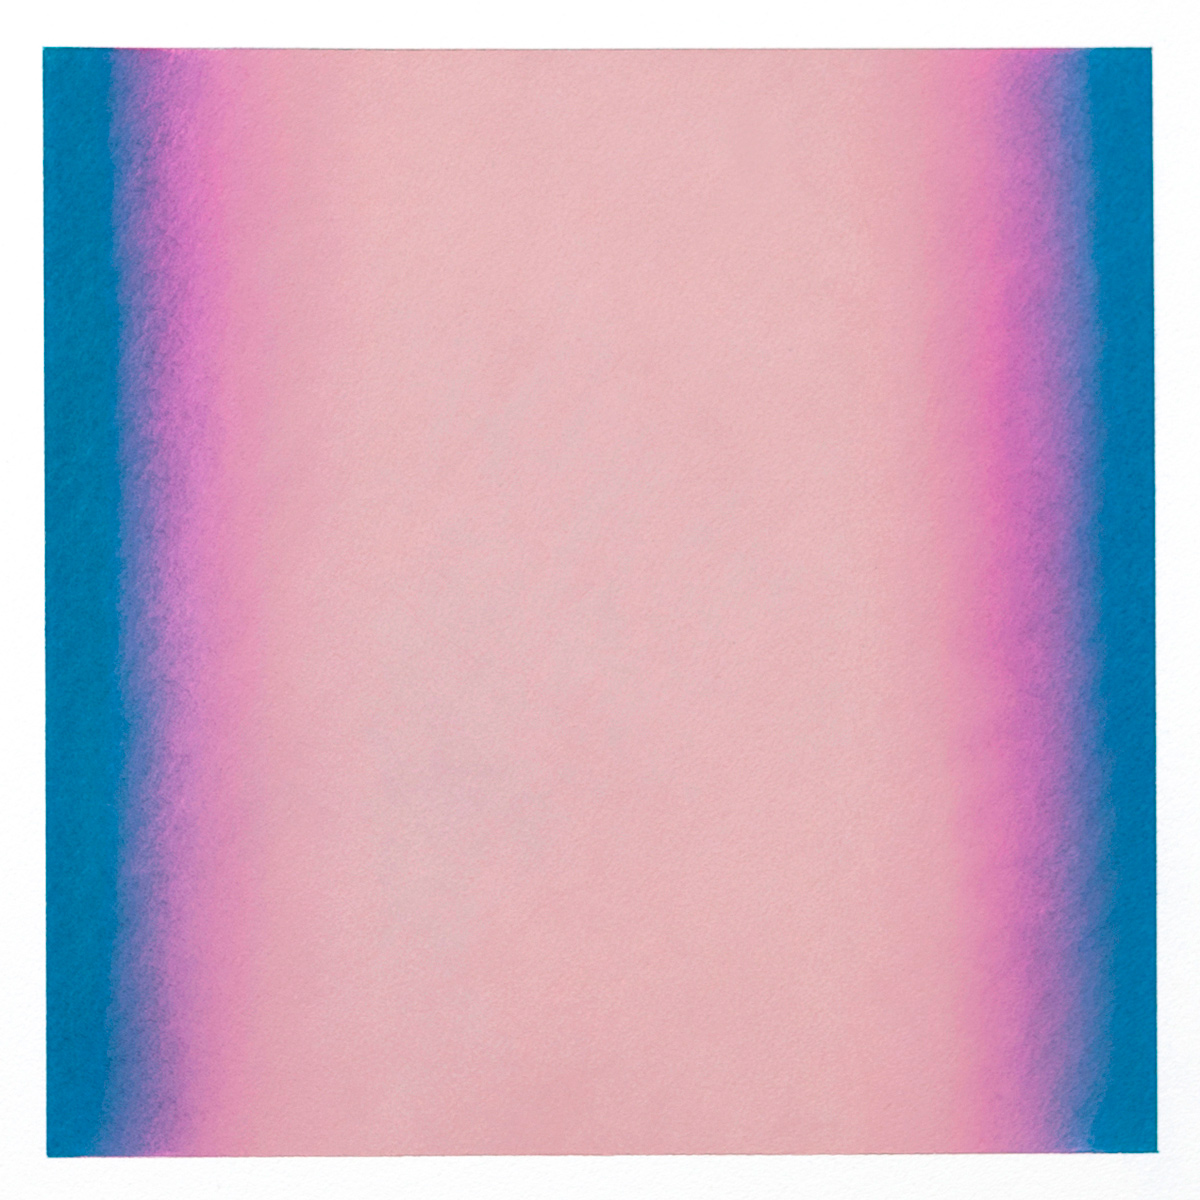 Counterpoint #8, 2012, pastel on paper, image 14 x 14 in. (36 x 36 cm.), sheet 30 x 22 in. (76 x 56 cm.)